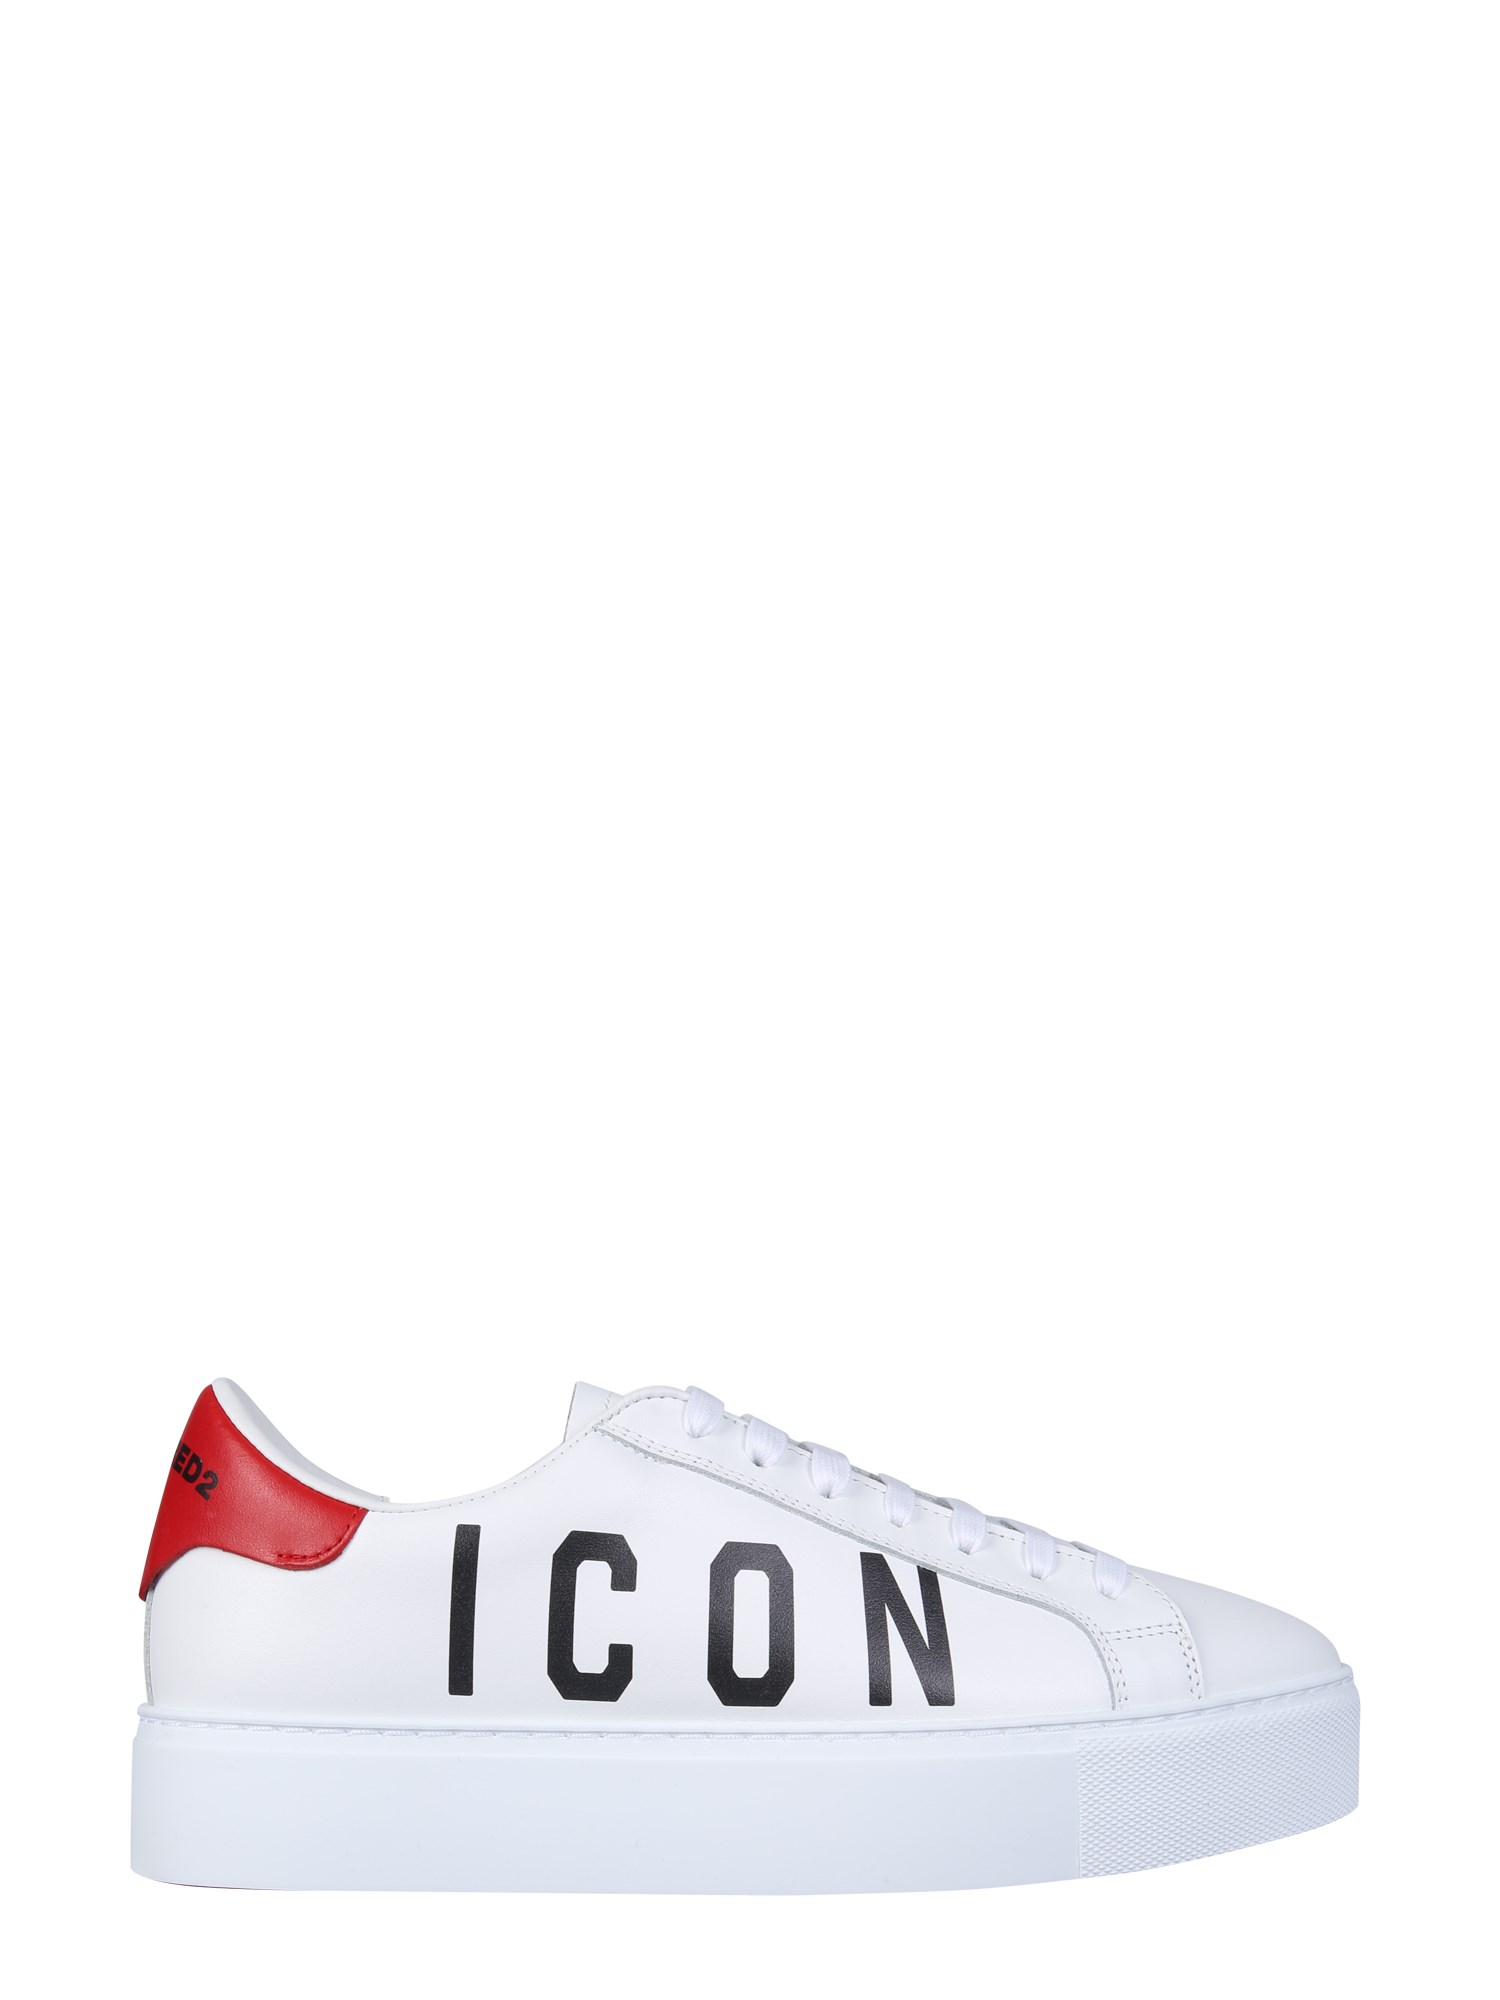 dsquared sneaker with logo